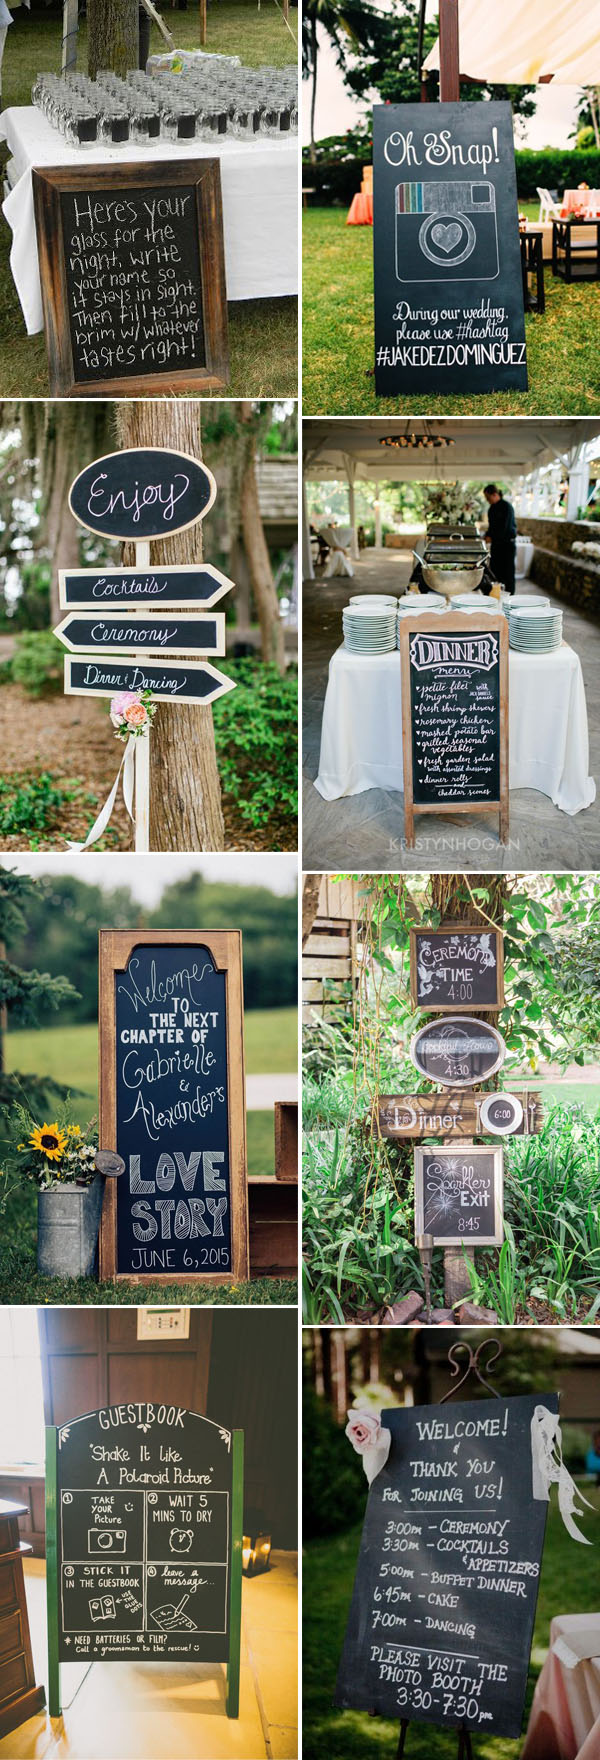 40 Stealworthy Chalkboard Wedding Ideas